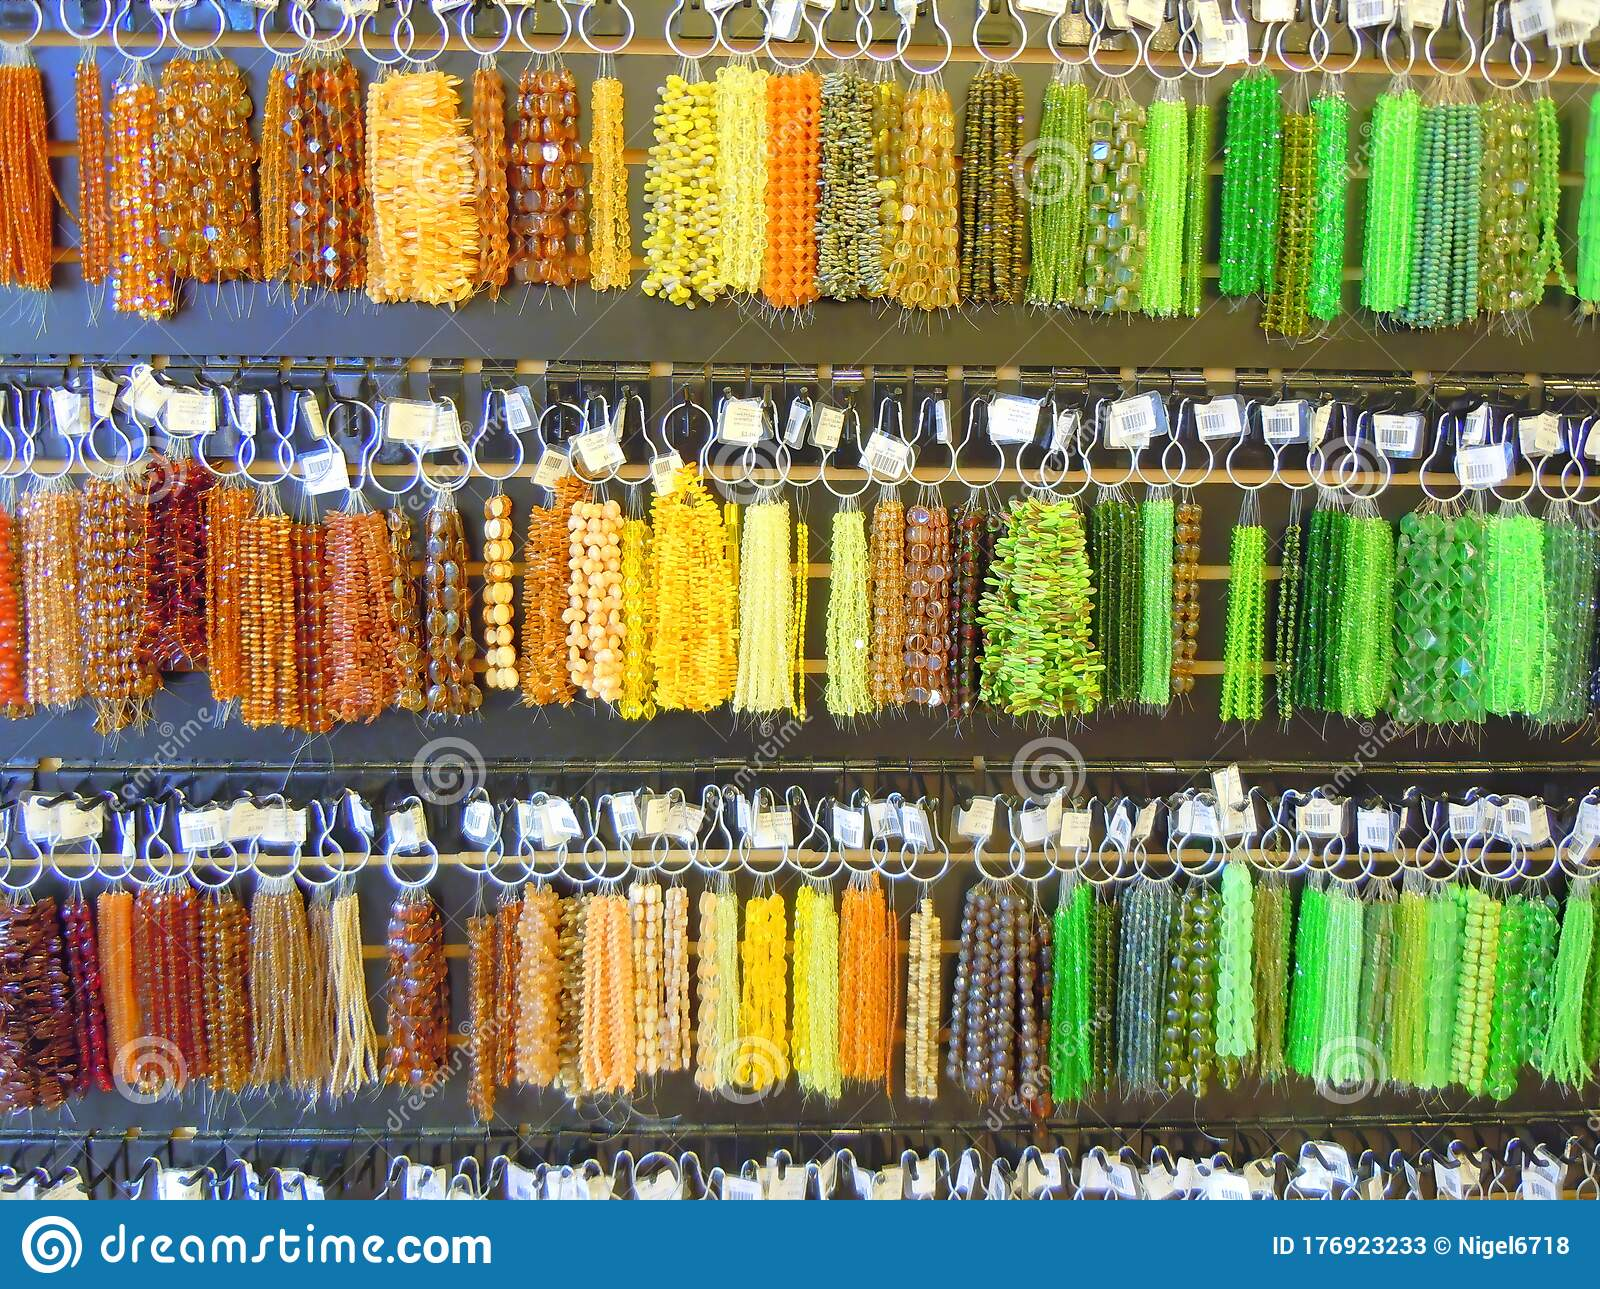 Colourful Plastic Bead Bracelets For Sale Stock Image Image Of Outlet States 176923233